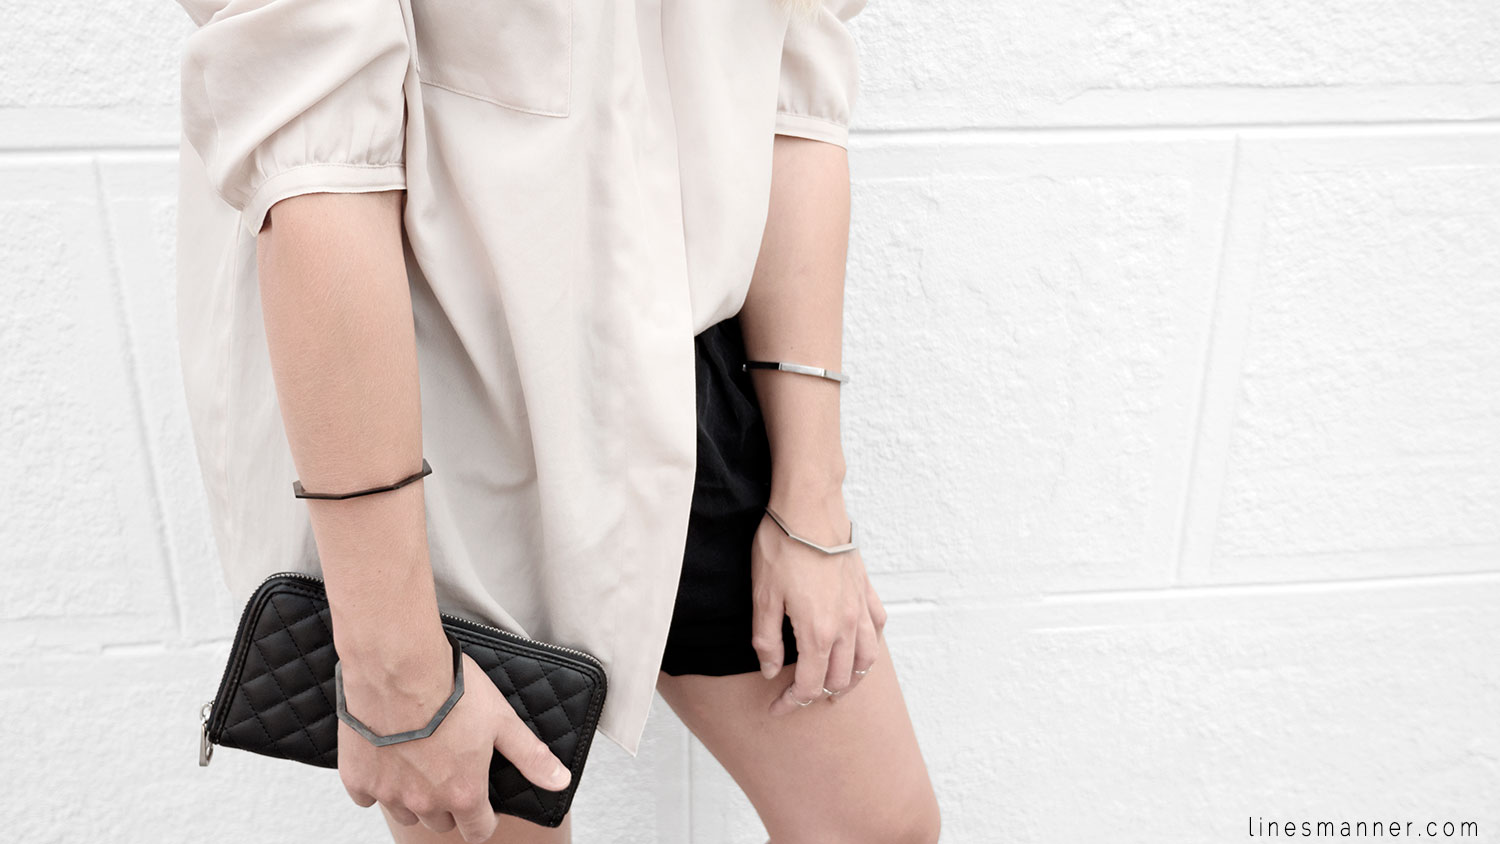 Lines-Manner-Remind-2015-Minimal-Essential-Outfit-Inspiration-Blog-Timeless-Year-Seasons-Details-Travel-Fashion-Versatile-Clean-Sleek-Quality-52